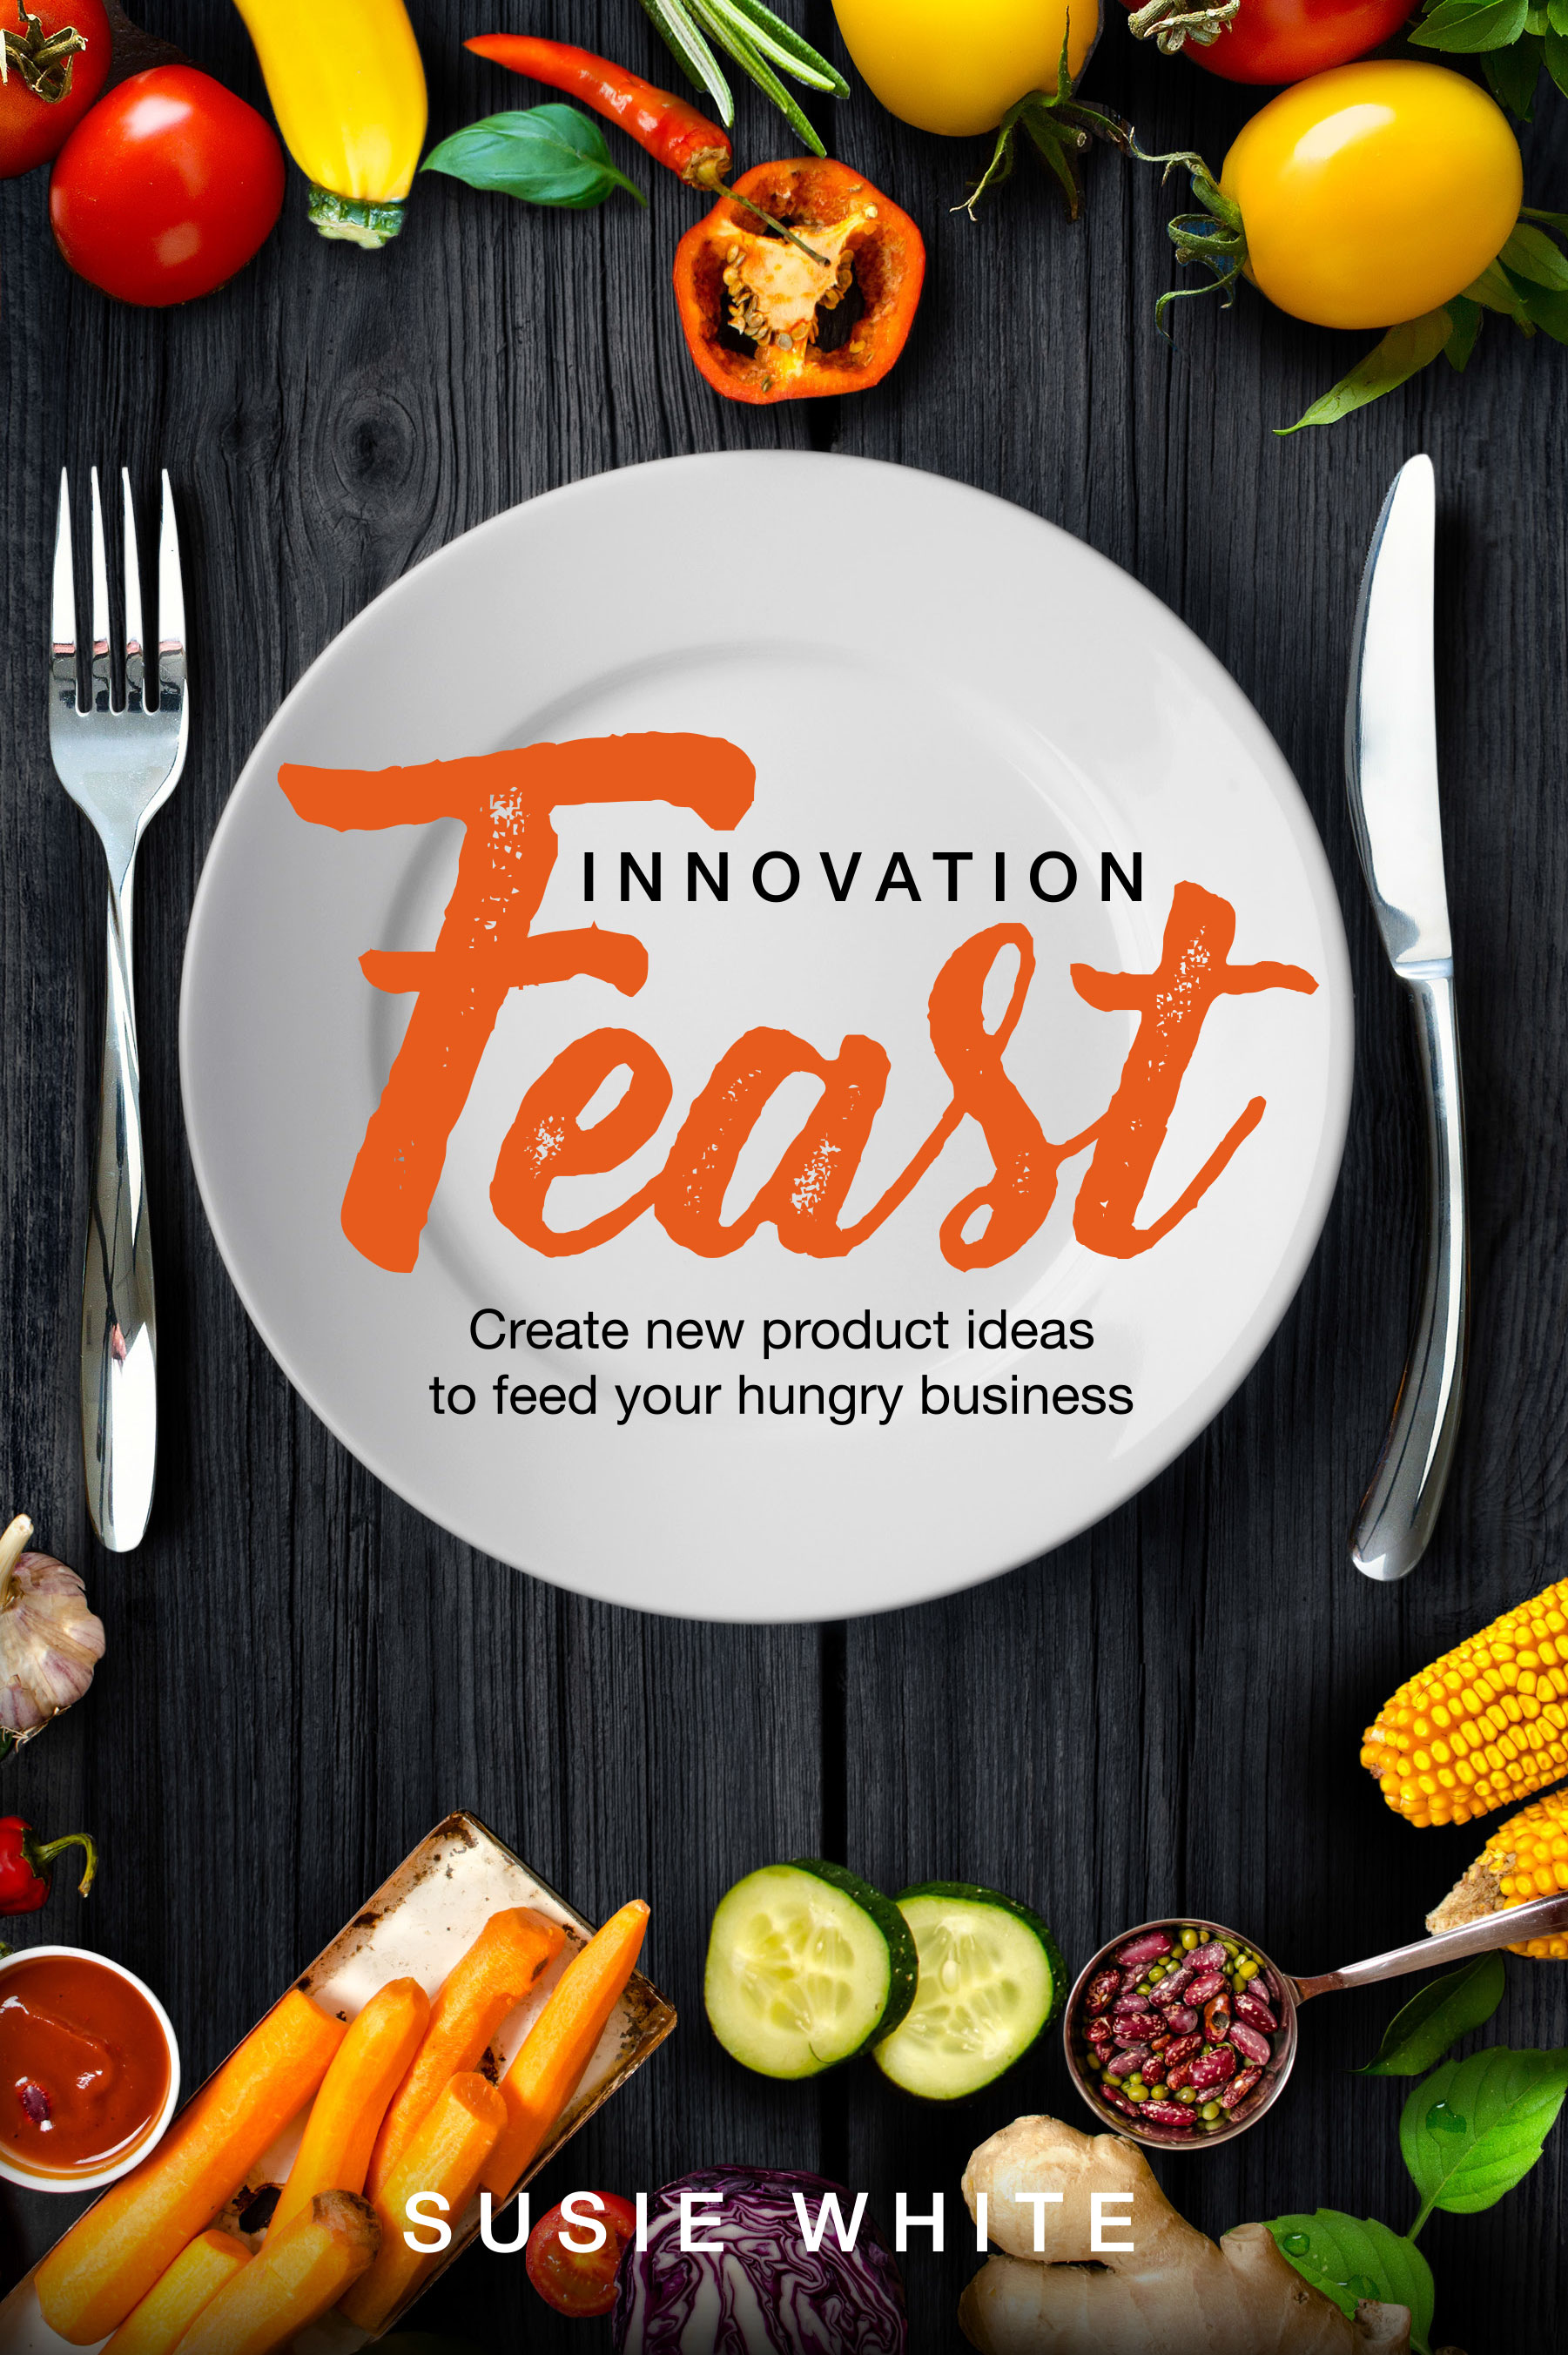 Innovation Feast